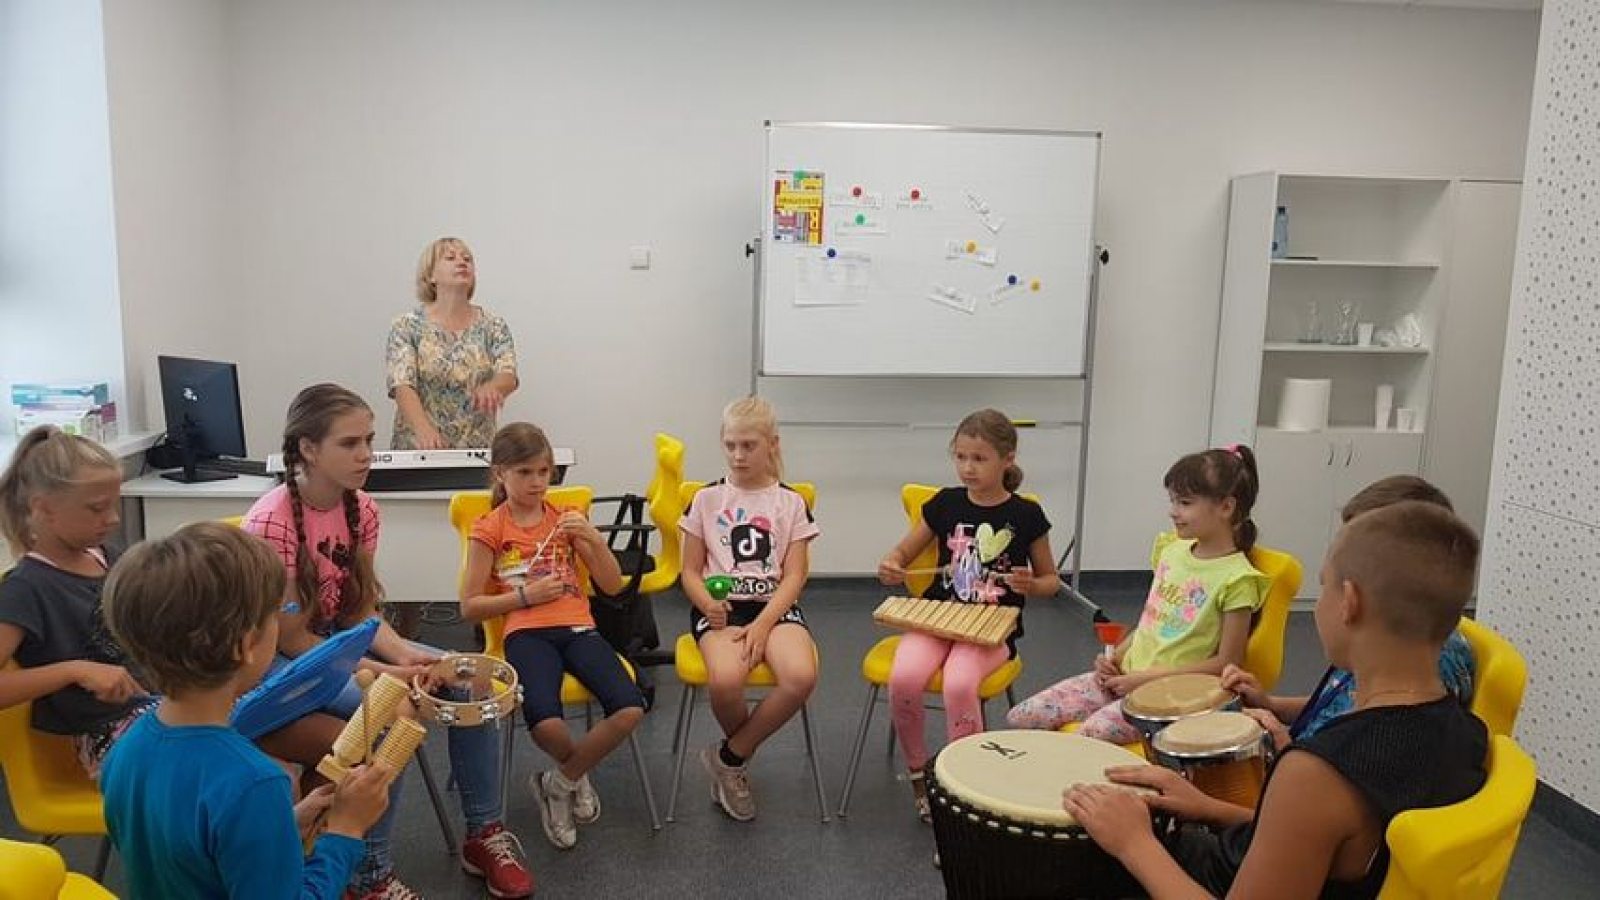 Children use different musical instruments during art therapy